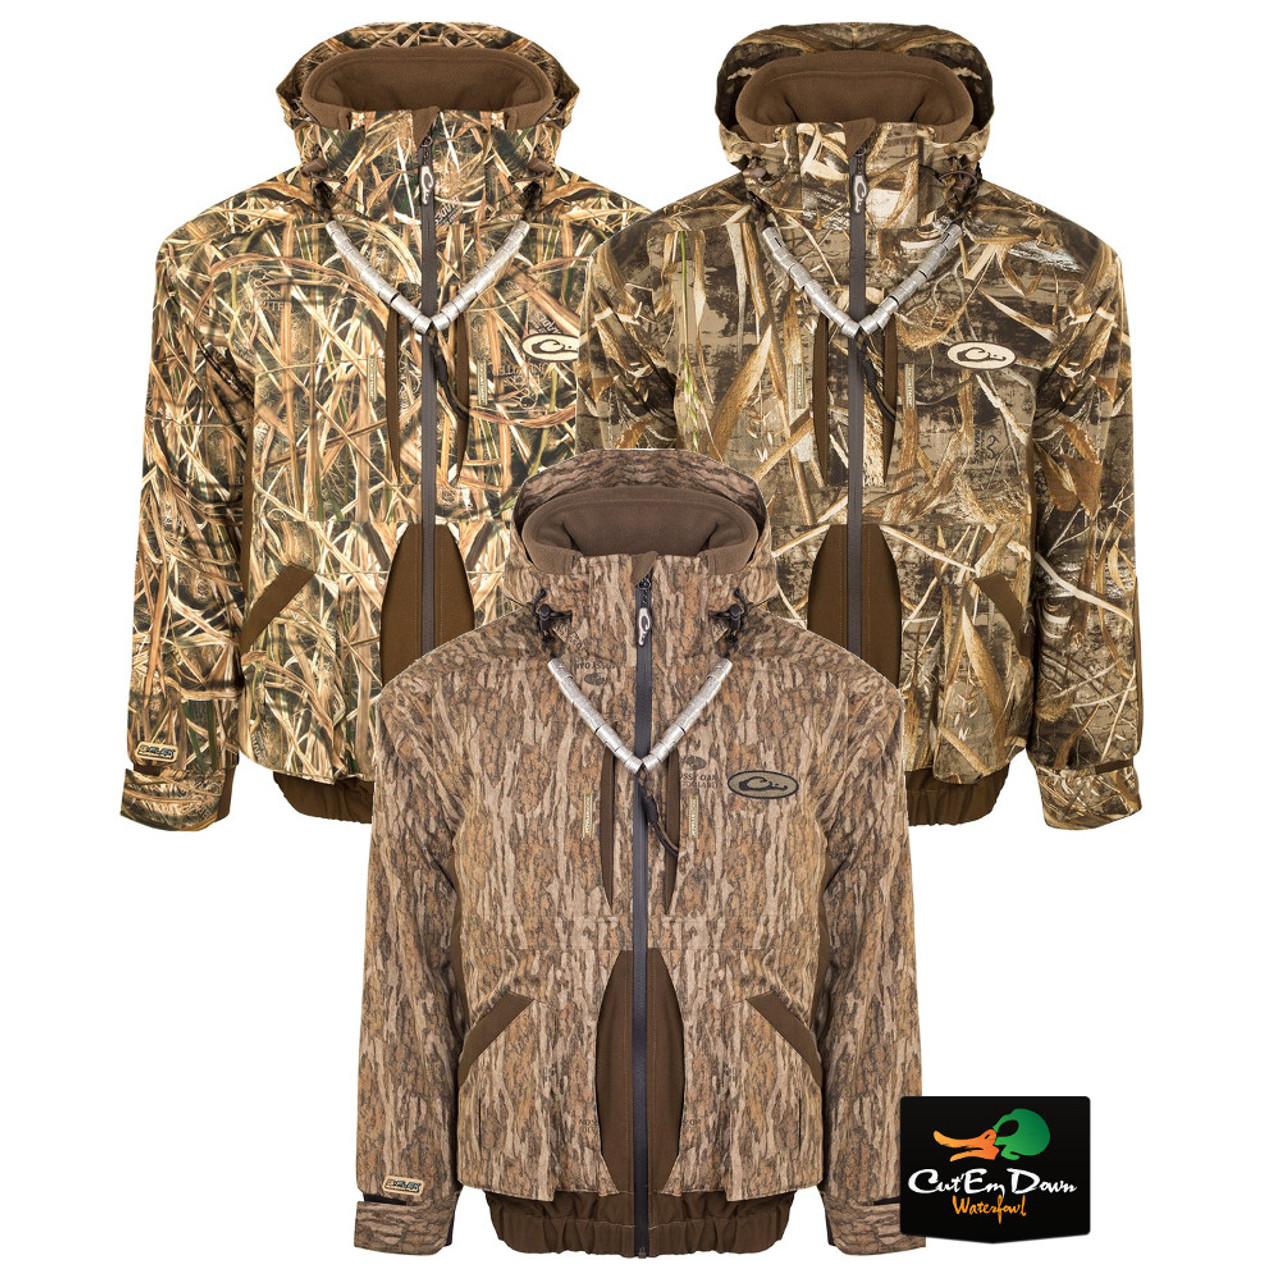 Details about DRAKE WATERFOWL SYSTEMS GUARDIAN FLEX FULL ZIP JACKET CAMO INSULATED COAT